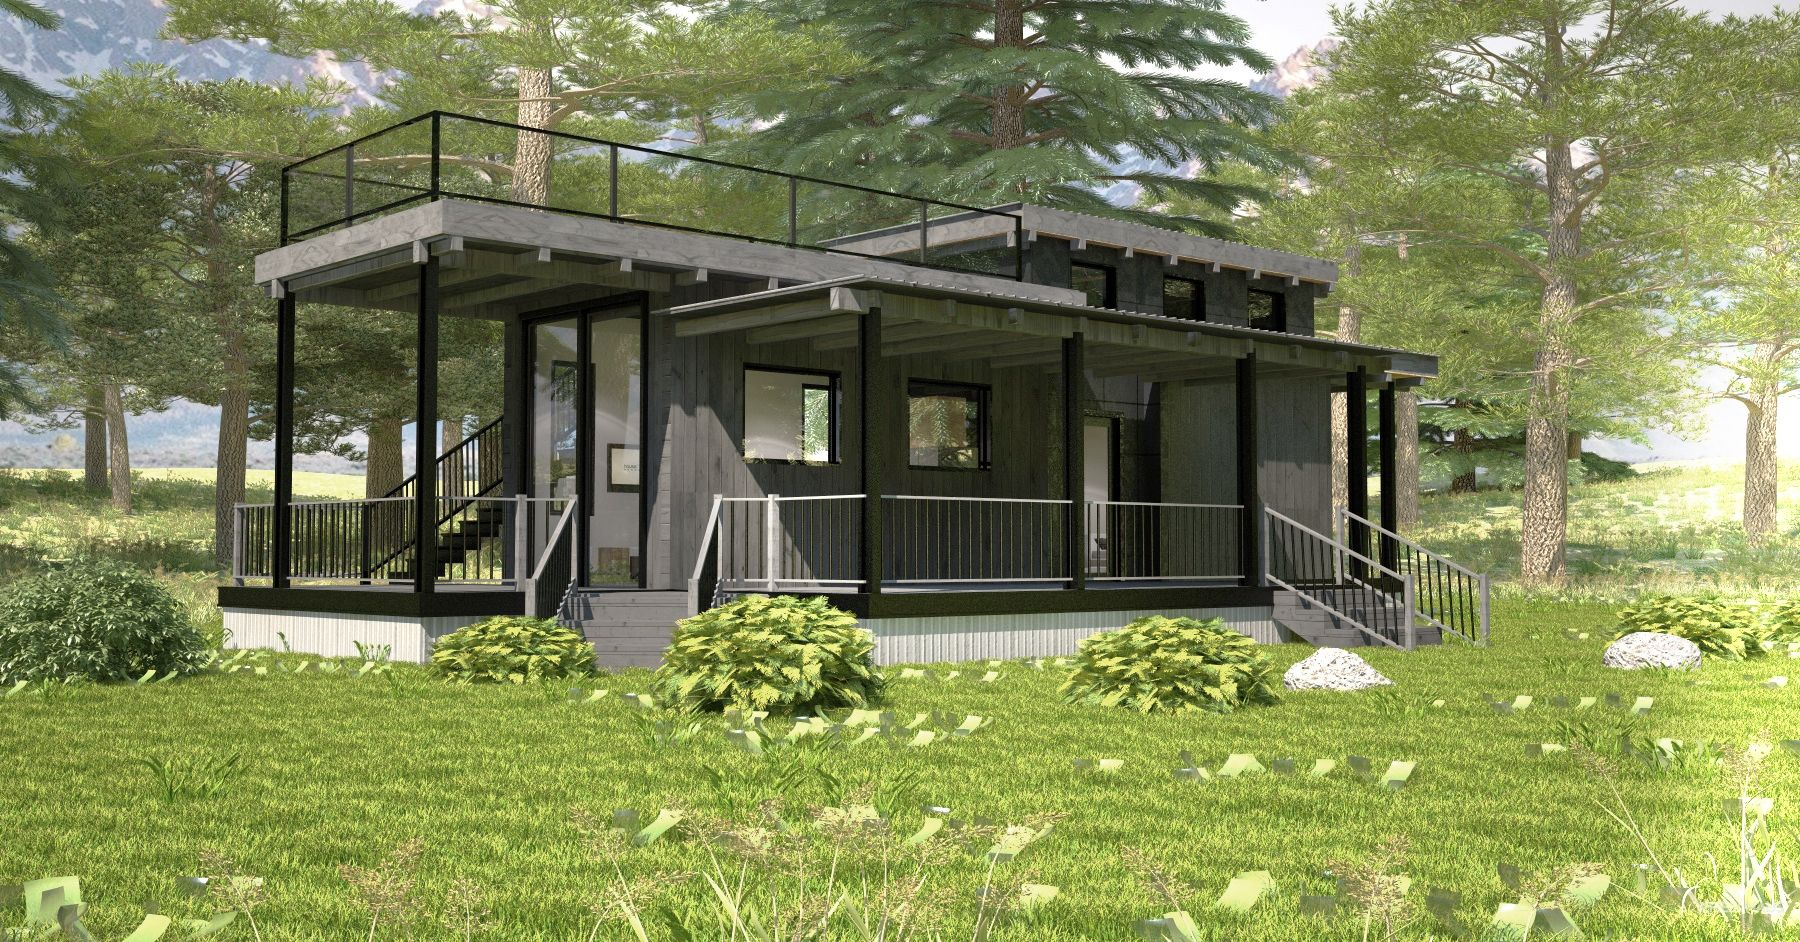 Pin By Jean Vidos On Our Tiny House Ideas In 2020 Flat Roof House Modern Tiny House Flat Roof